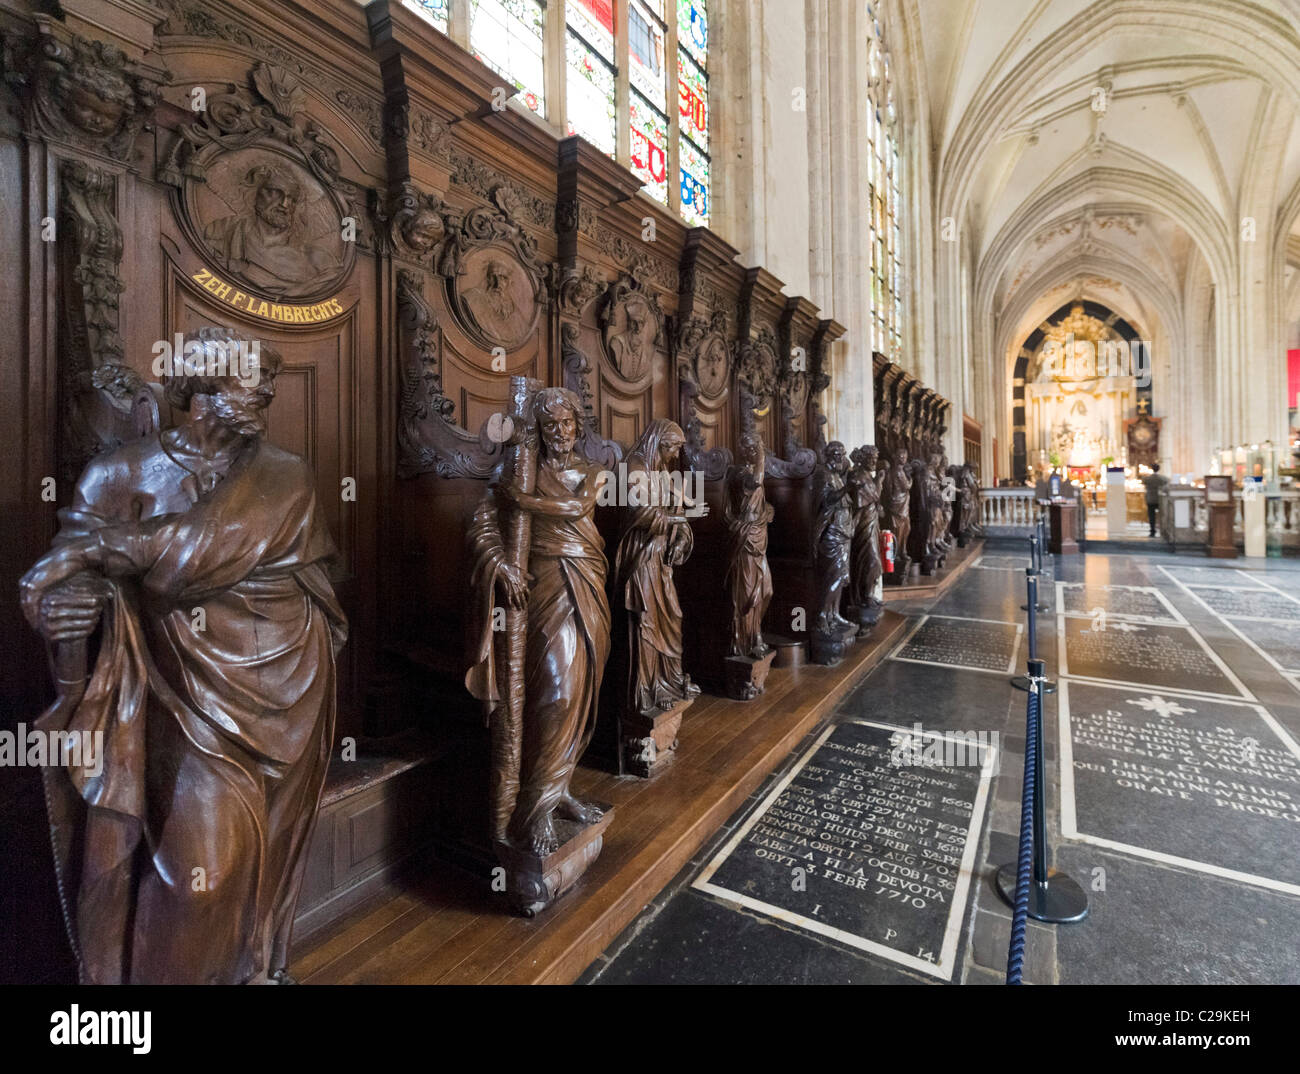 Oak carvings of the Twelve Apostles, Onze Lieve Vrouwekathedraal (Cathedral of Our Lady), Antwerp, Belgium - Stock Image